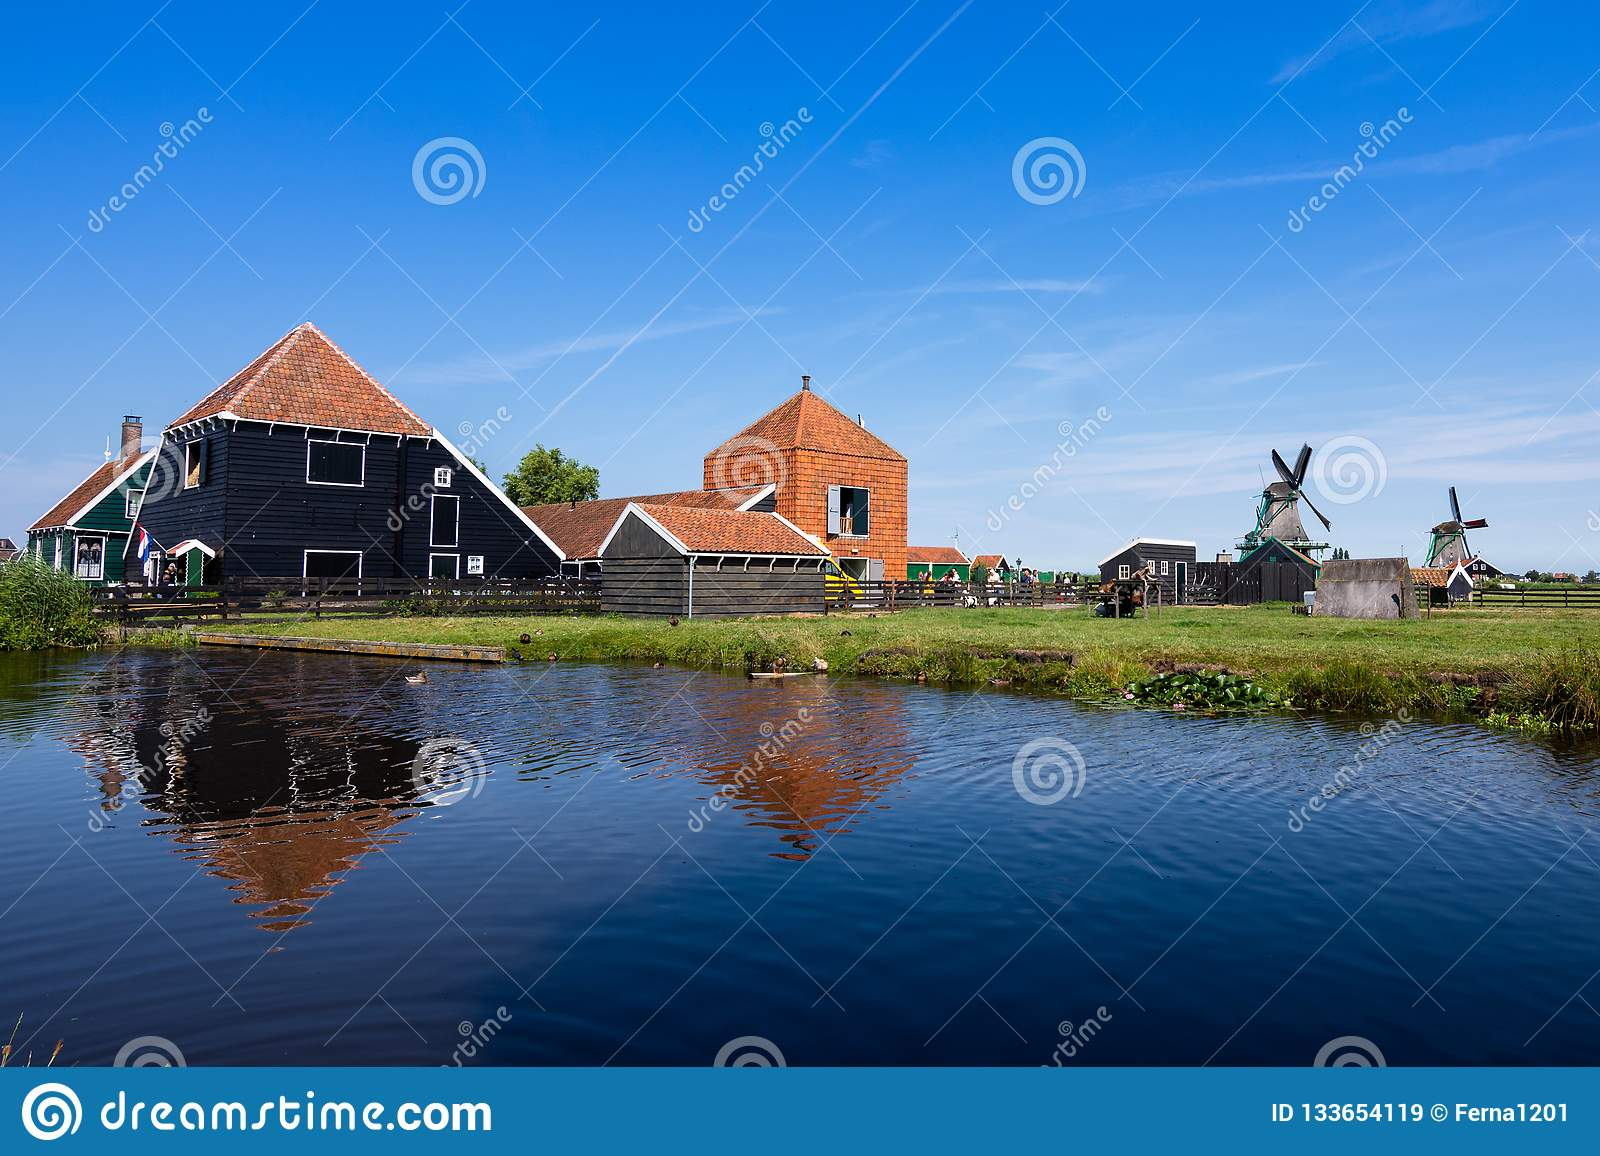 Reflections in the water of the farms and windmills on a lovely day, with a blue sky. Zaanse Schans. Holland